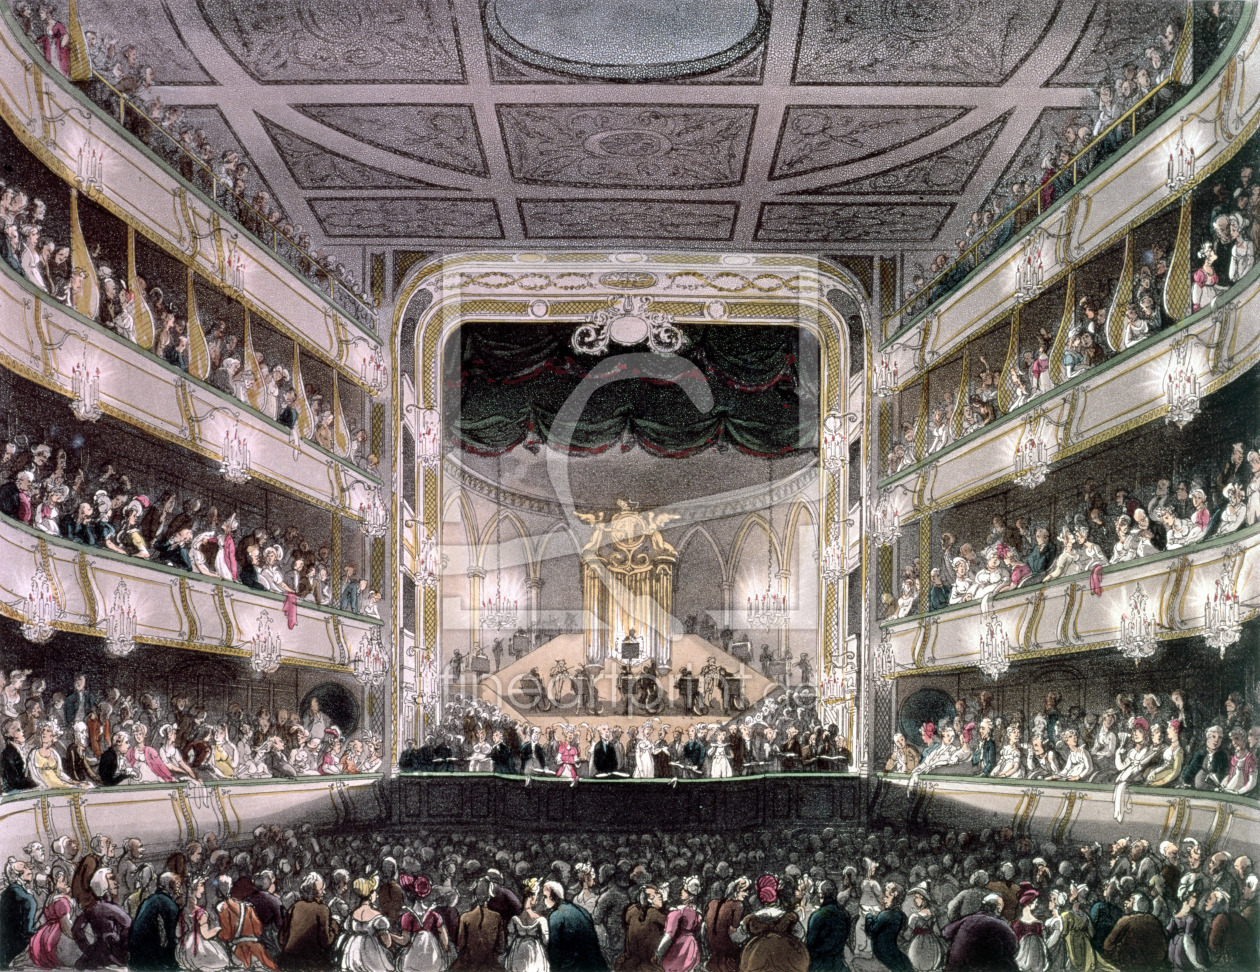 Bild-Nr.: 31002639 Covent Garden Theatre, 1808, from 'Ackermann's Microcosm of London' engraved by  erstellt von Rowlandson, Thomas